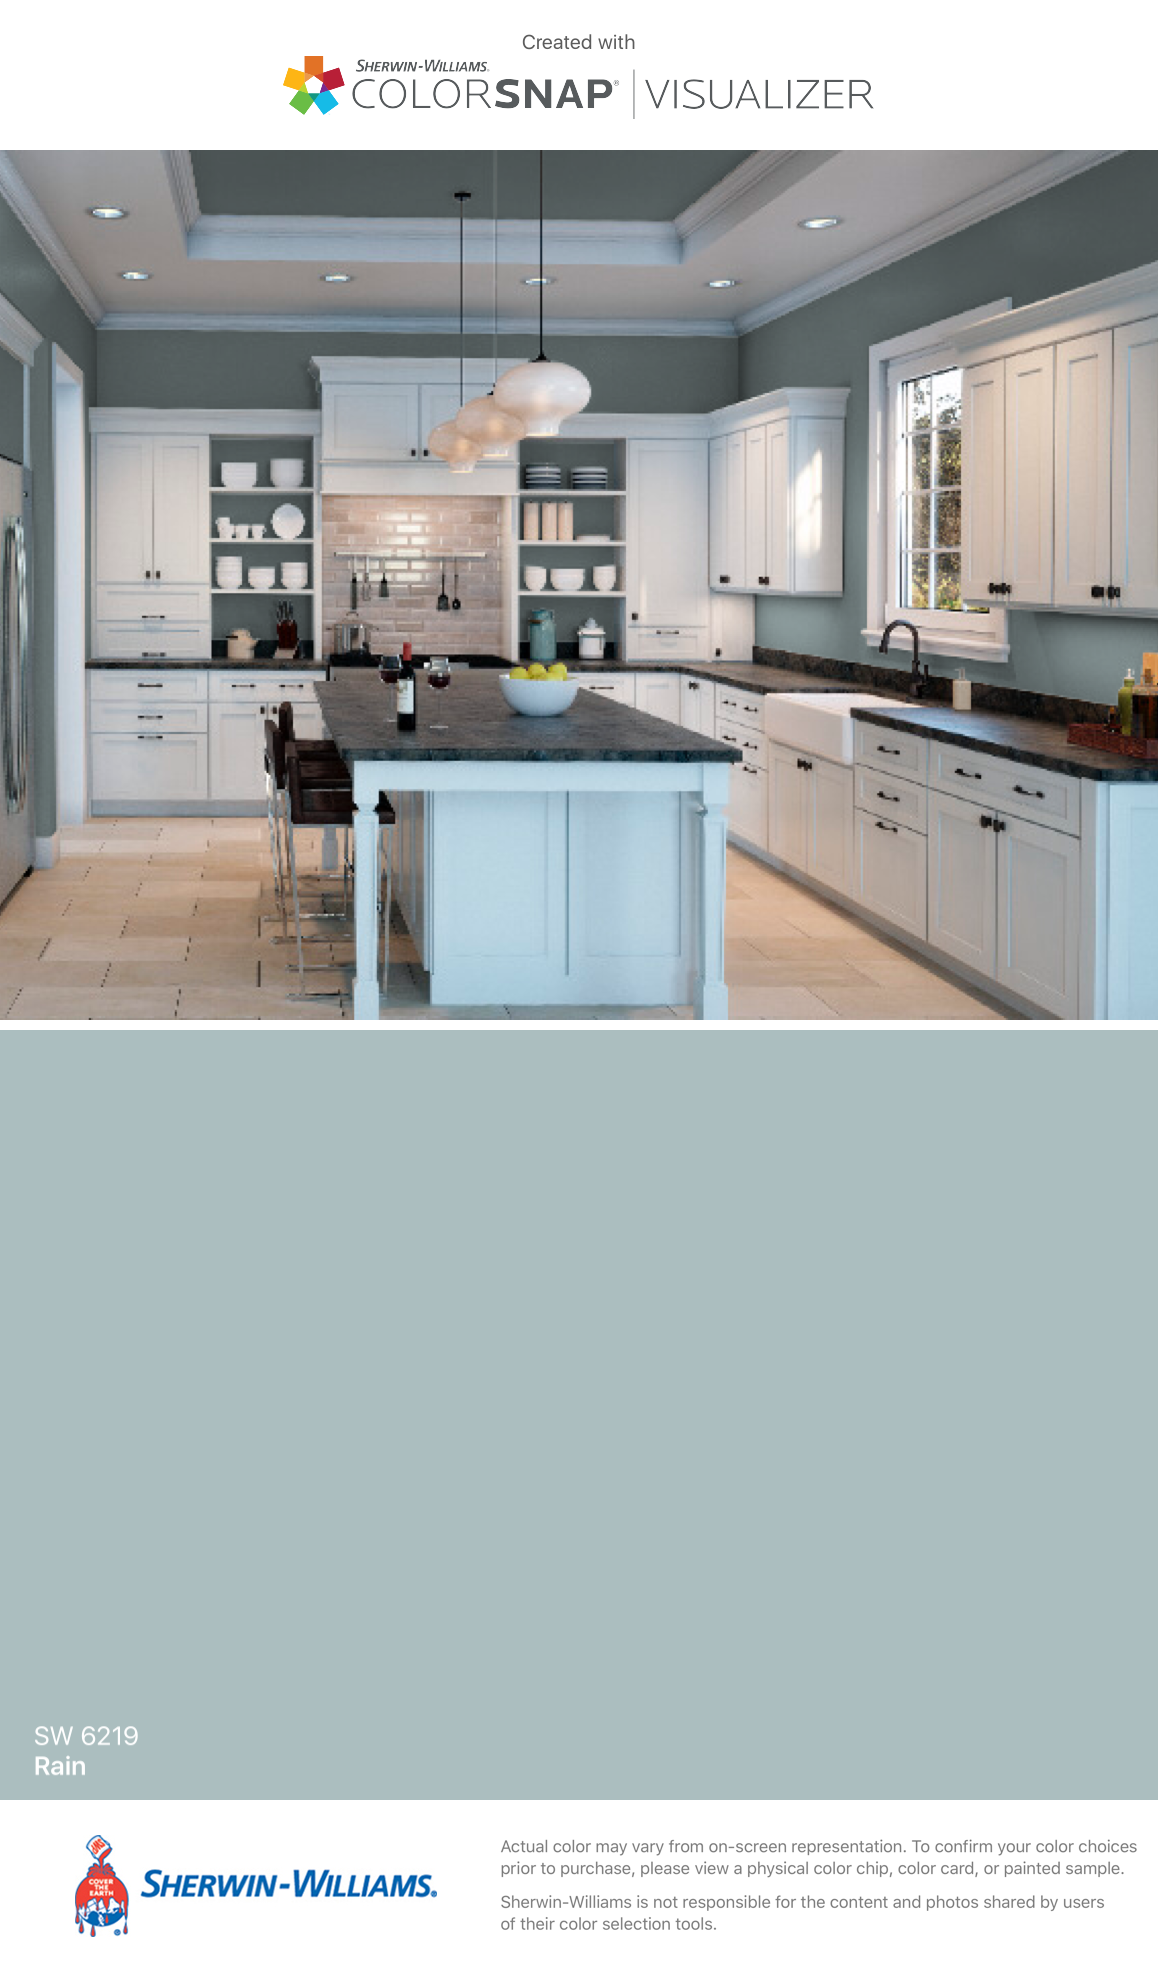 I found this color with colorsnap visualizer for iphone by sherwin williams rain sw 6219